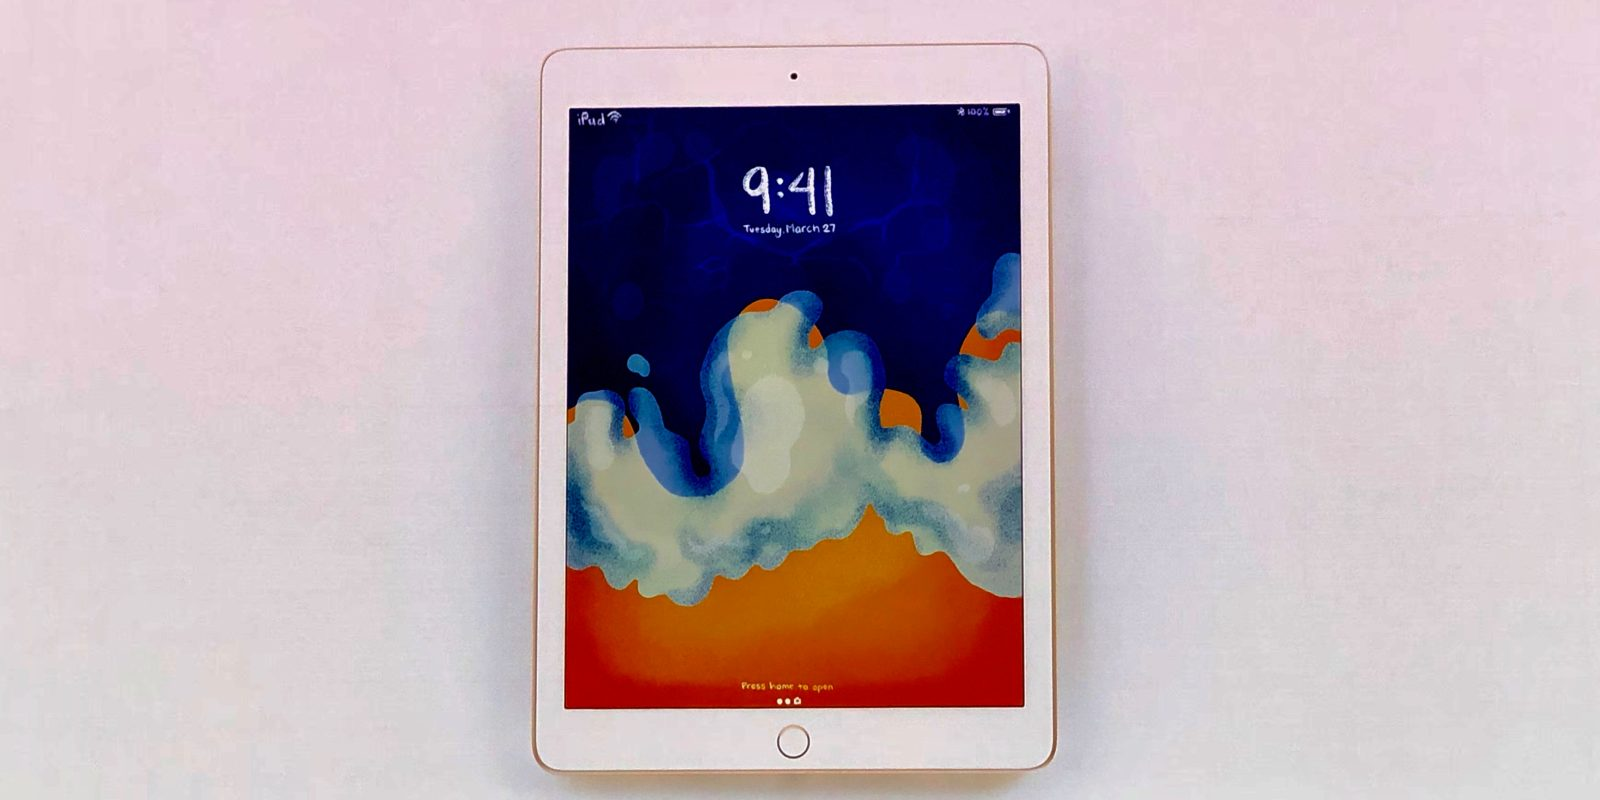 Apple Unveils New 97 Inch Ipad With Pencil Support A10 Mini Retina 32gb Wifi Cell Silver Fusion Chip At Education Event